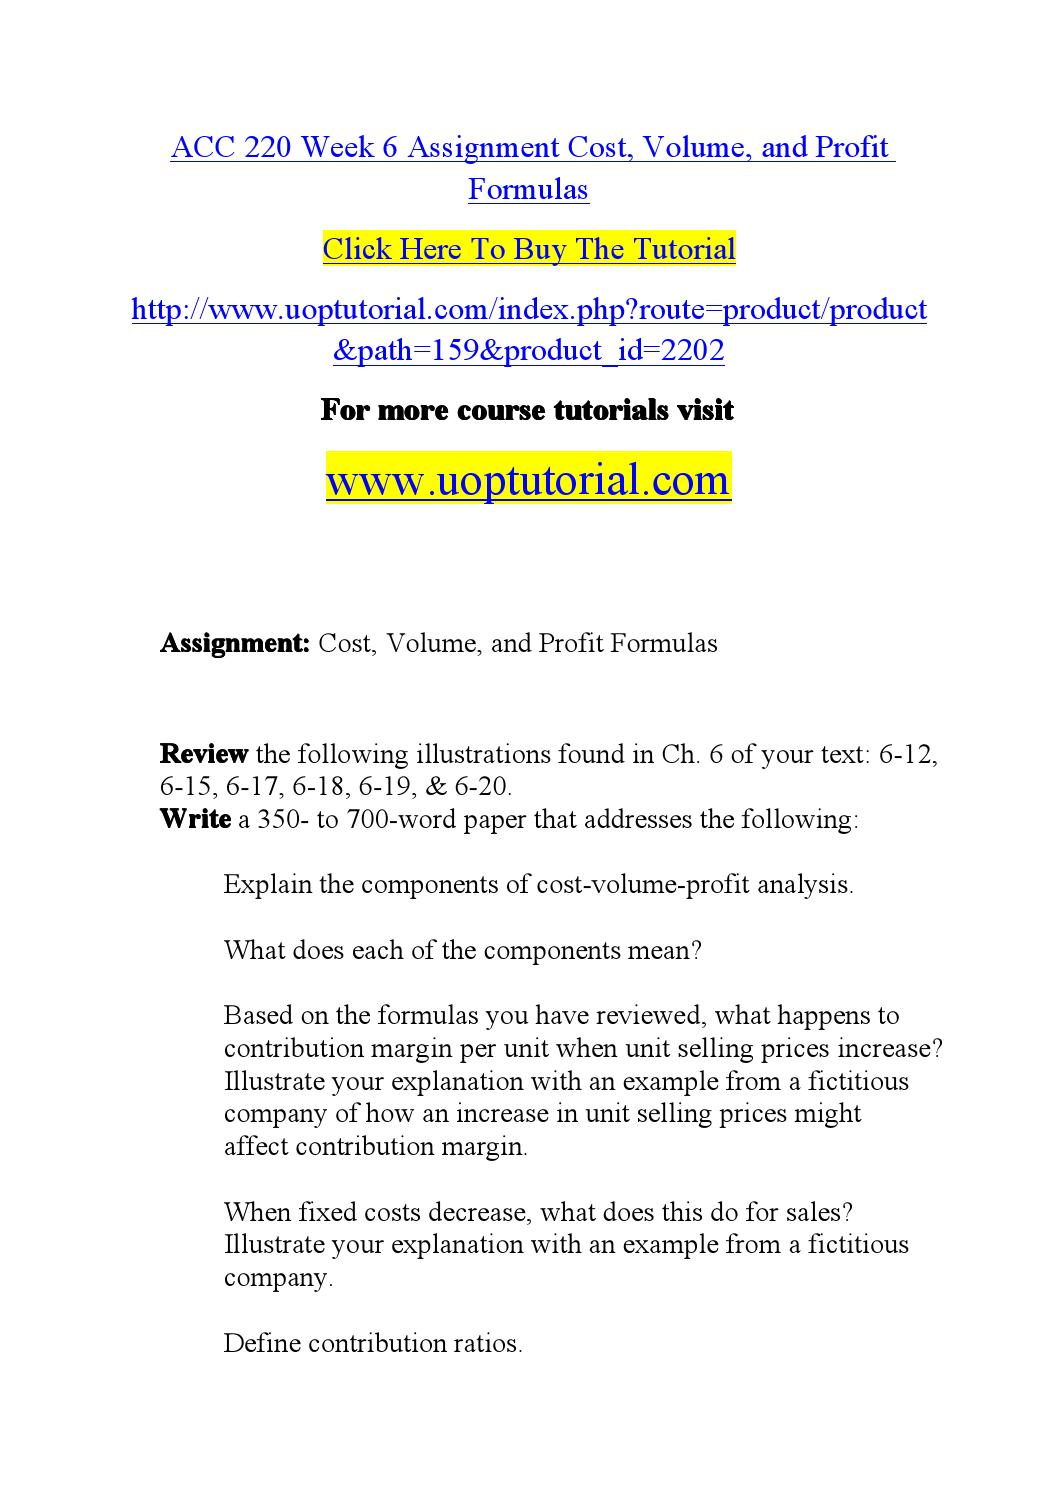 Acc 220 week 6 assignment cost by happy1106 - issuu